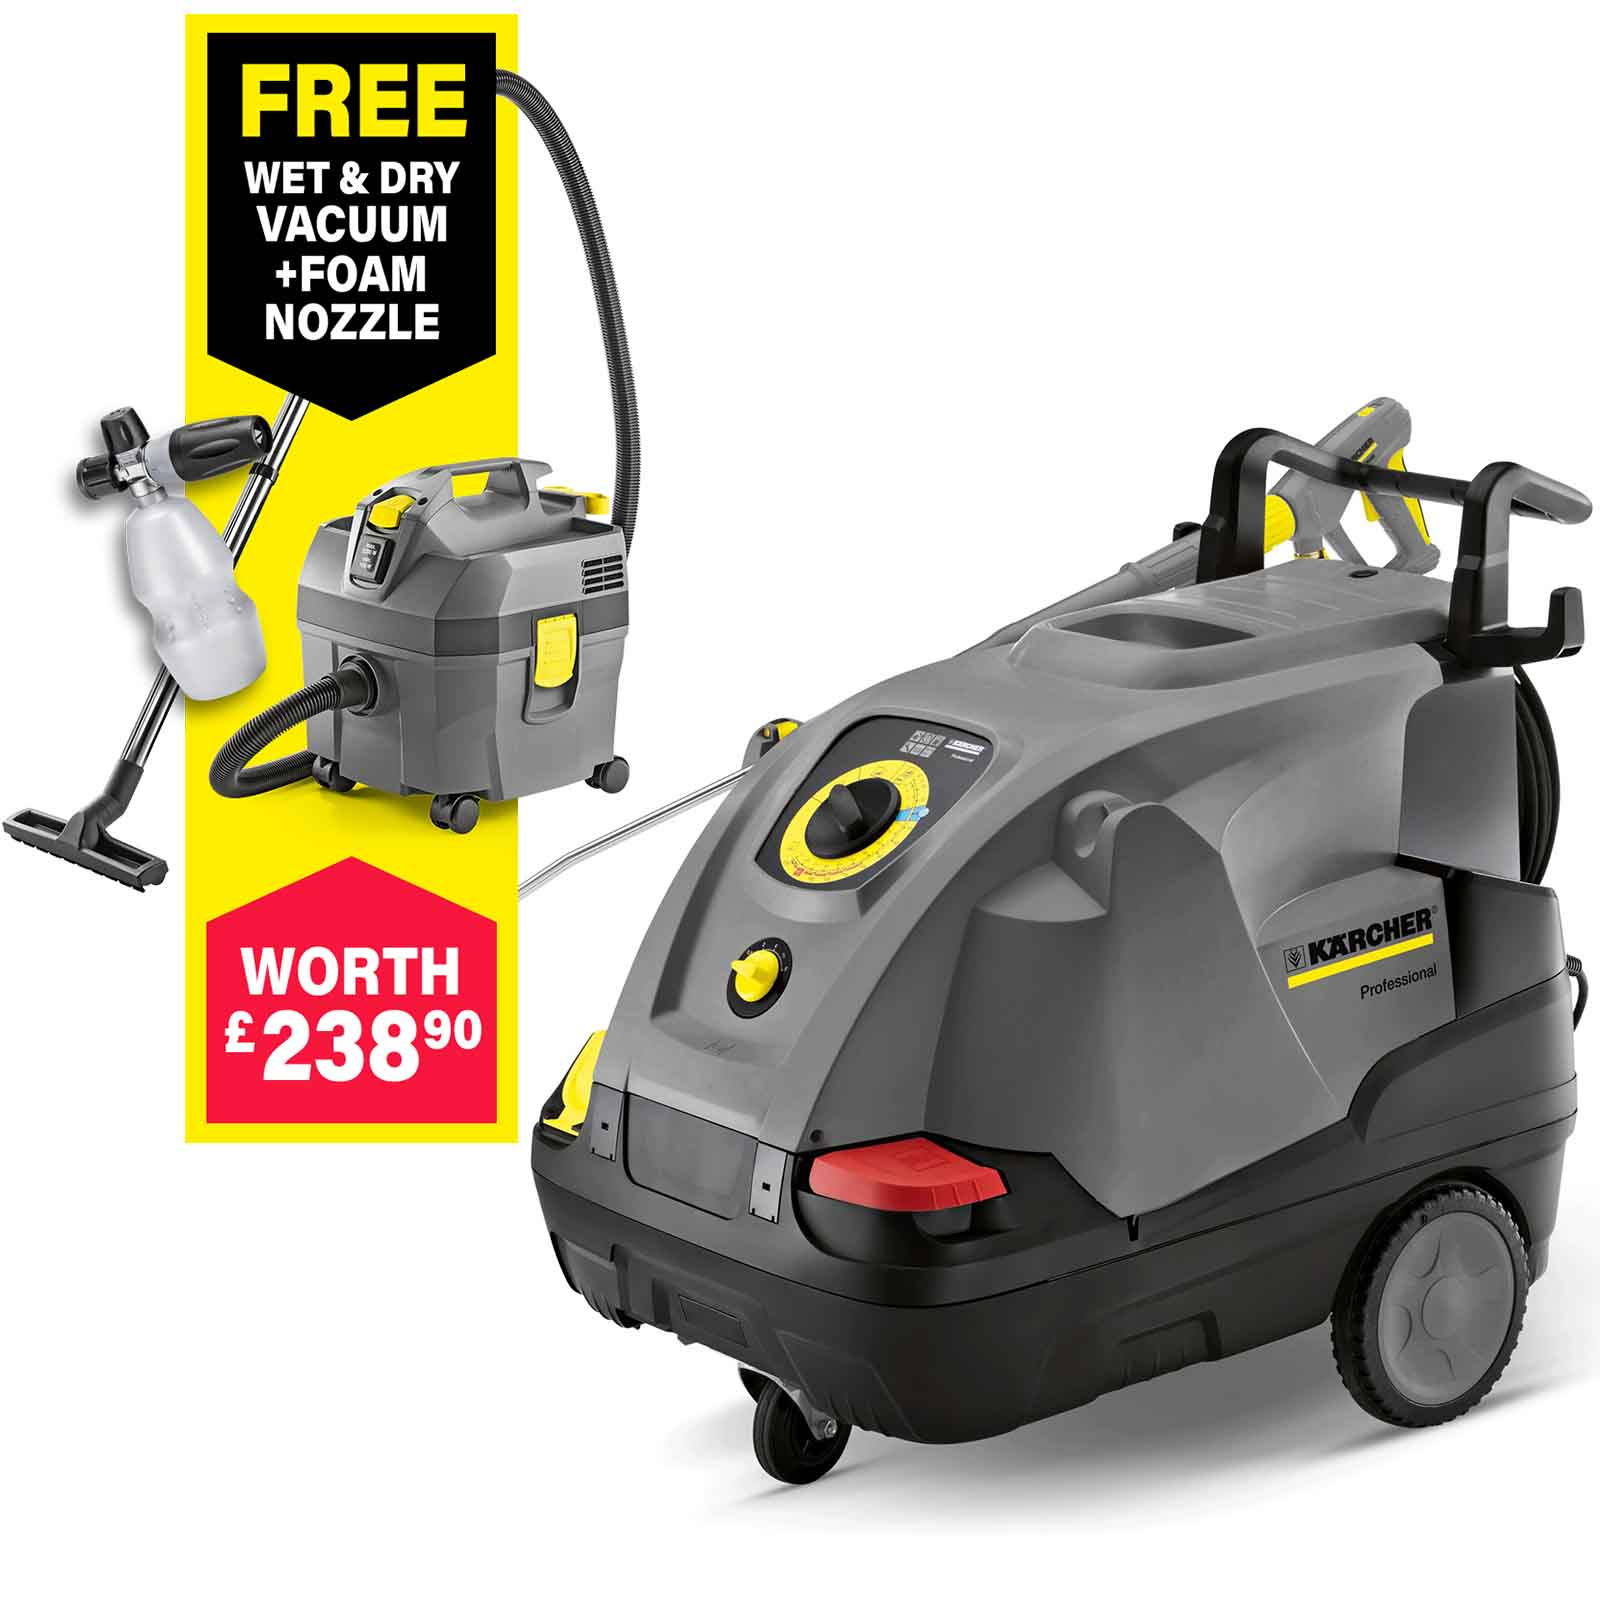 hight resolution of karcher hds 6 12 c professional hot water steam pressure washer 120 bar free foam nozzle worth 82 95